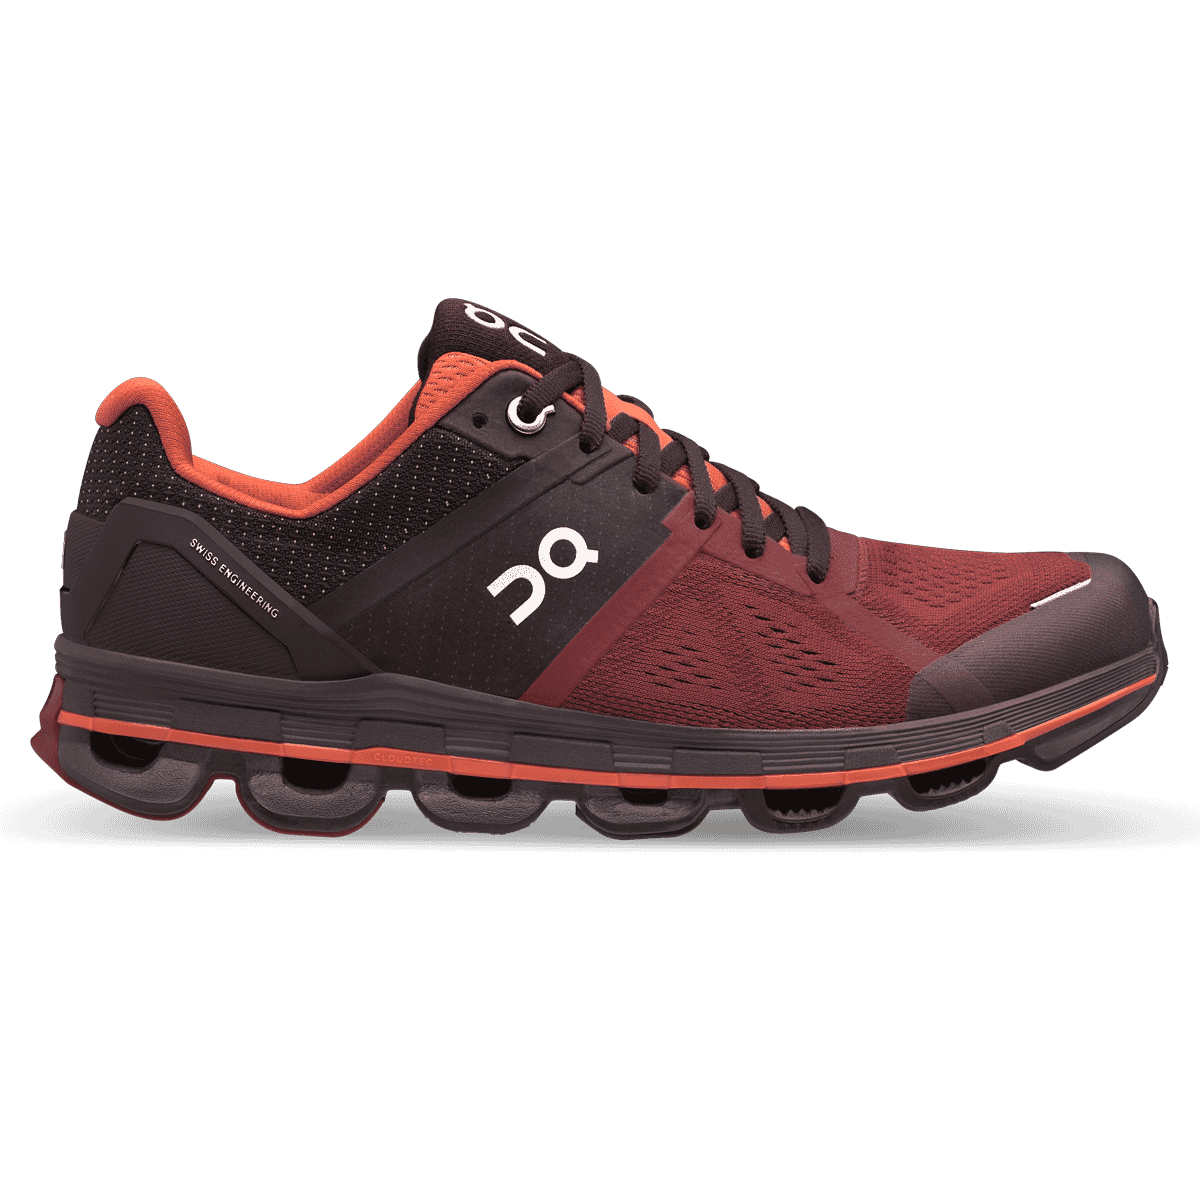 c13a90d56 Cloudace - Ultimate Stability Running Shoe - Women   On